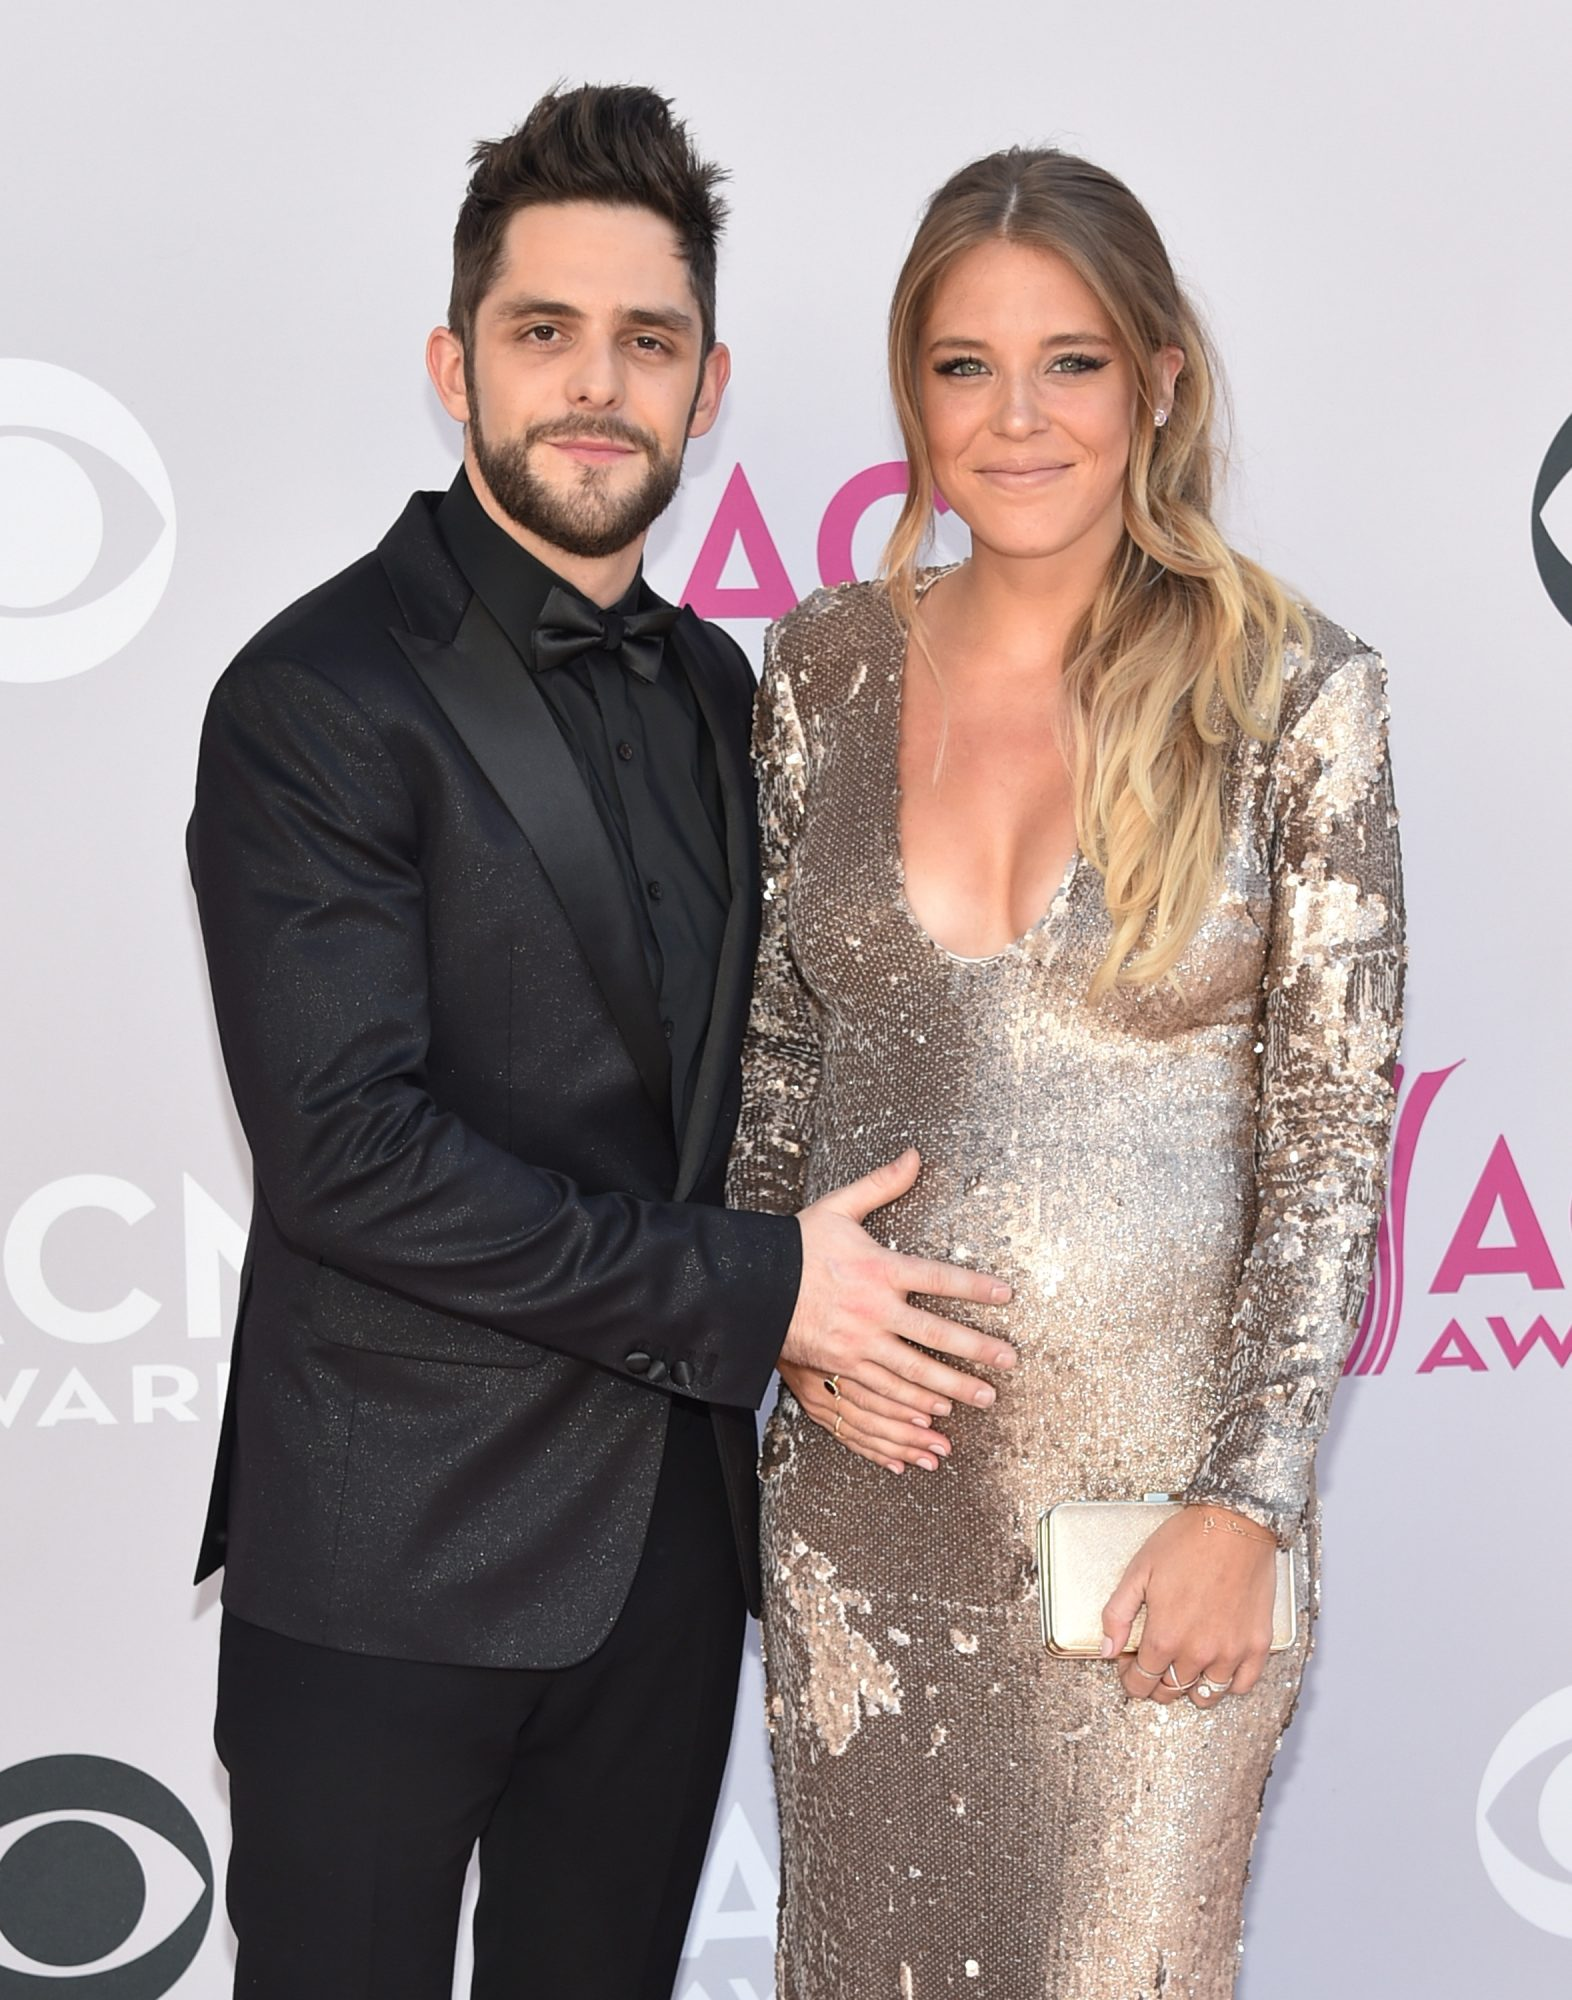 Rhett Thomas and Lauren Gregory Akins at Academy of Country Music Awards